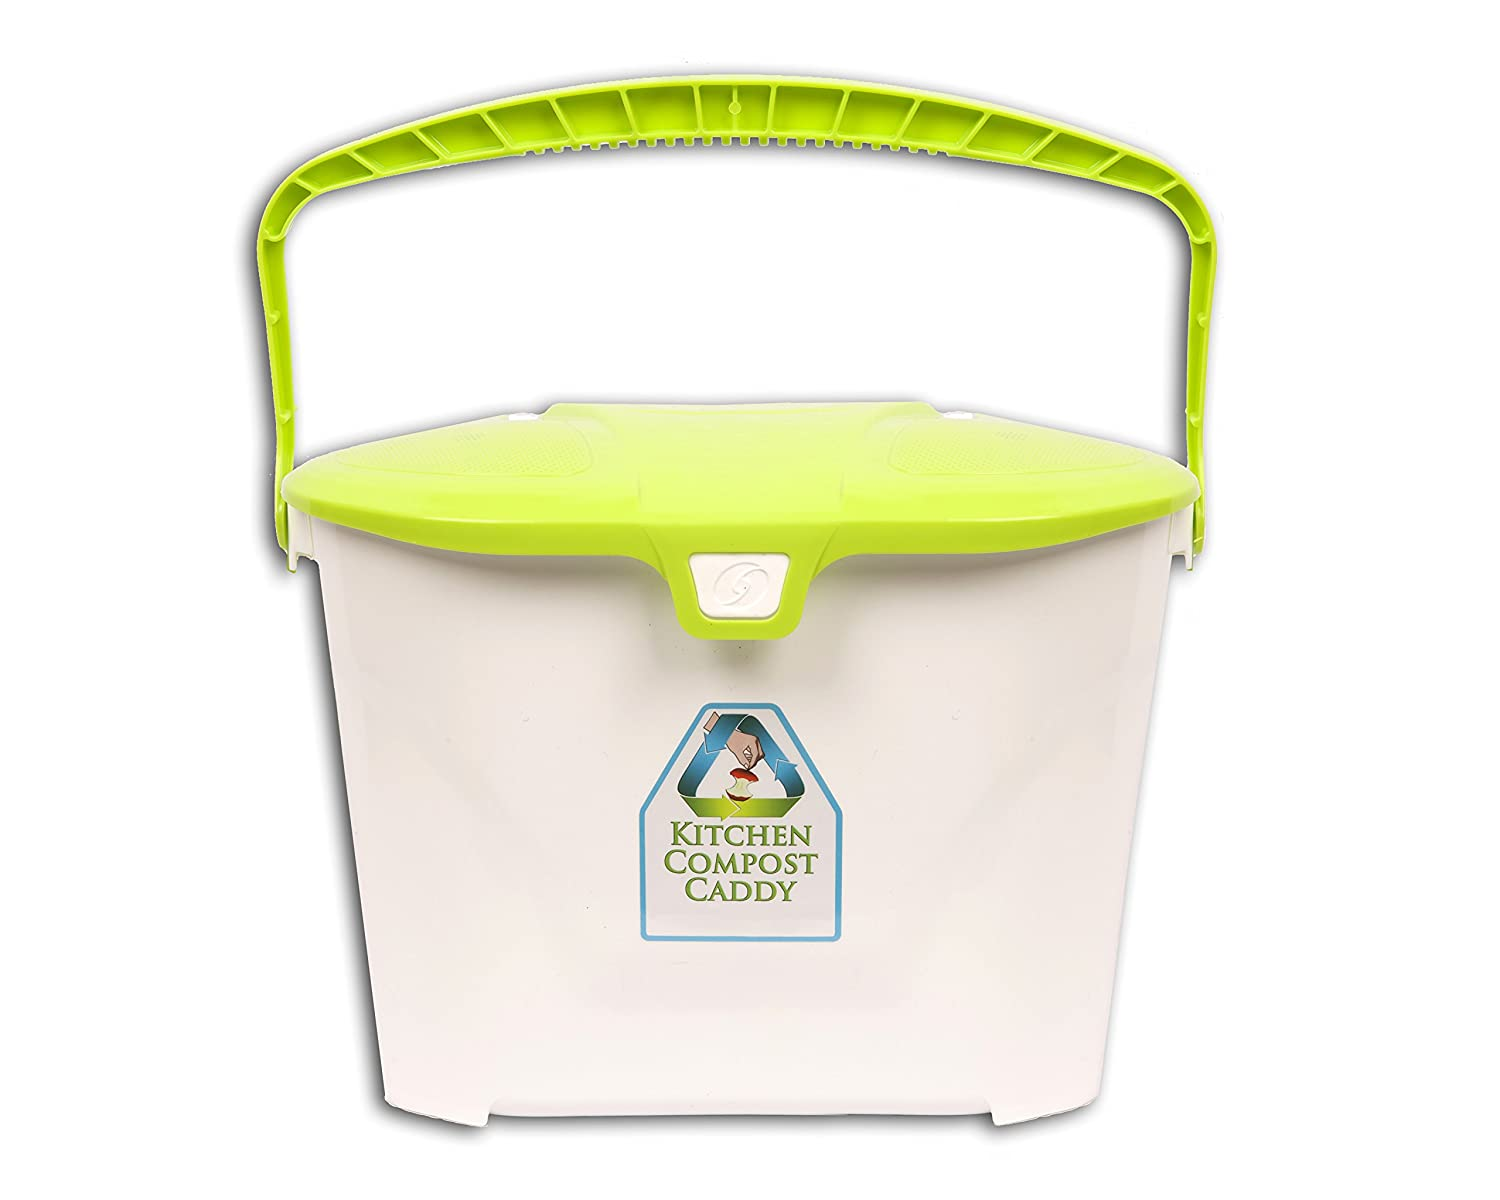 Kitchen Compost Caddy ventilato compost secchio